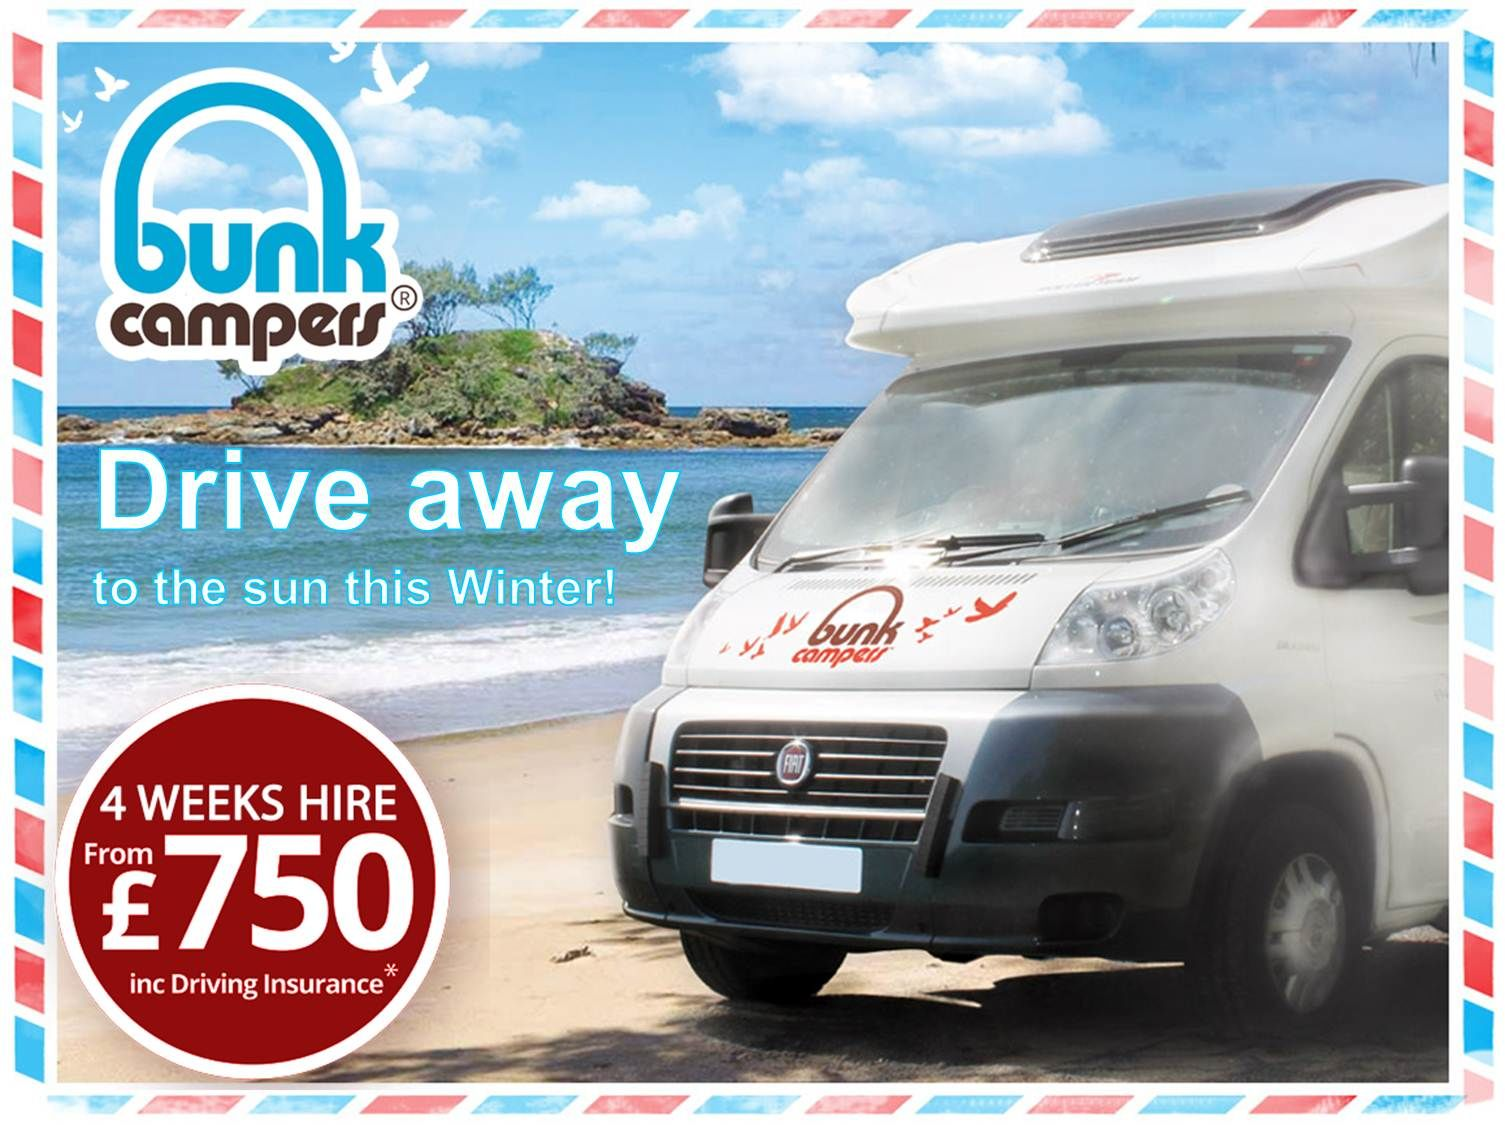 Bunk campers WS advert